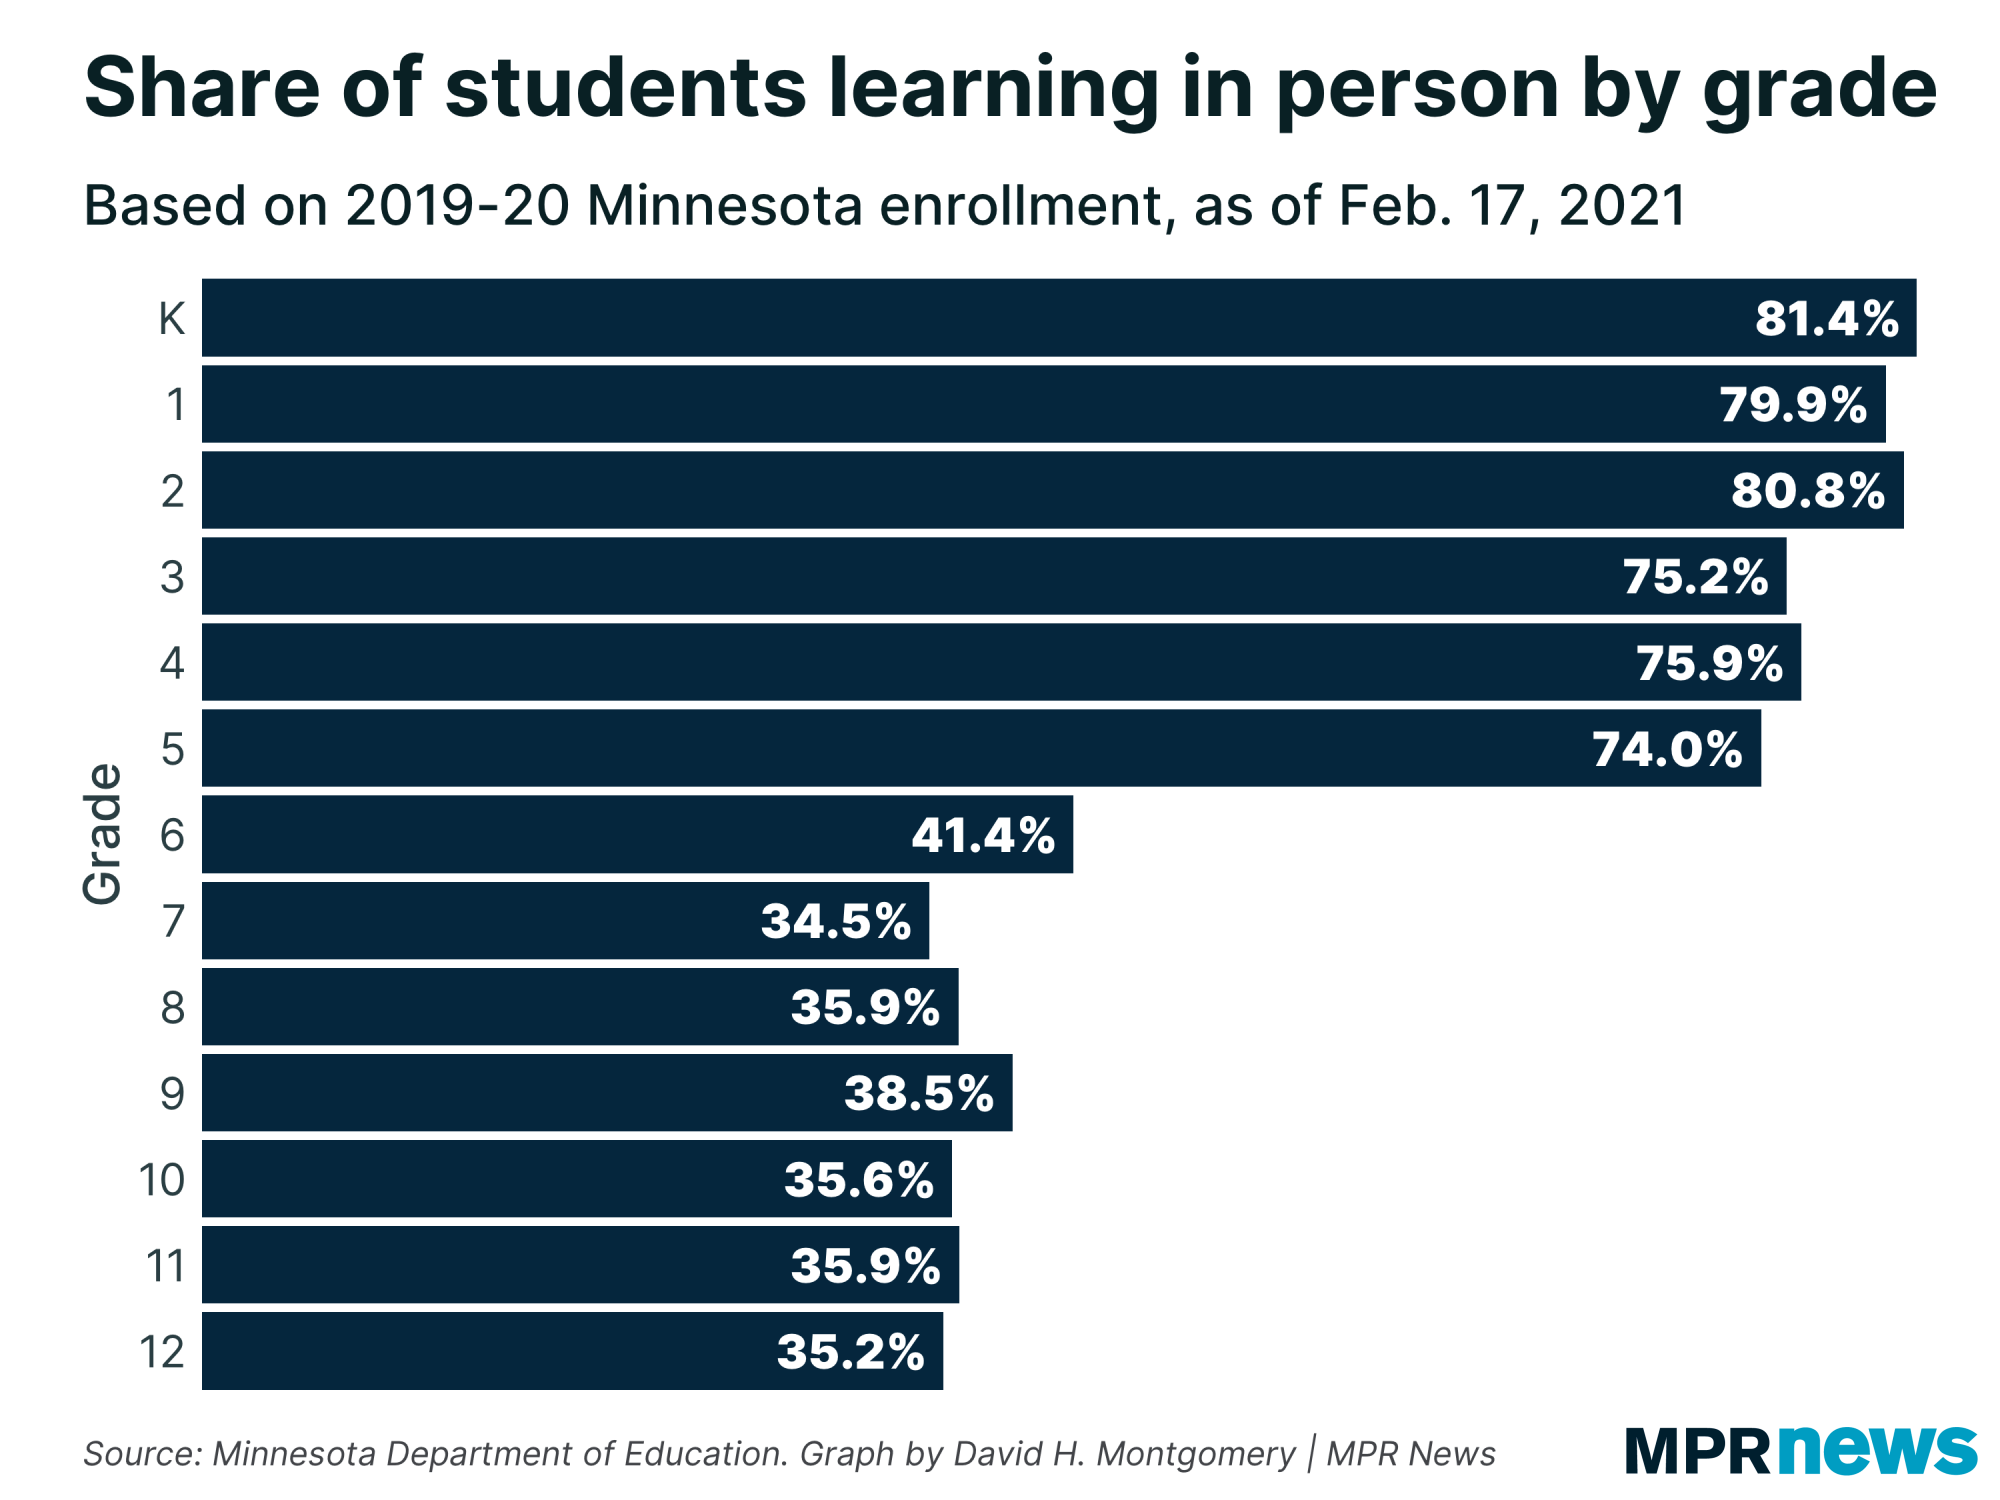 Share of Minnesota students learning in person by grade